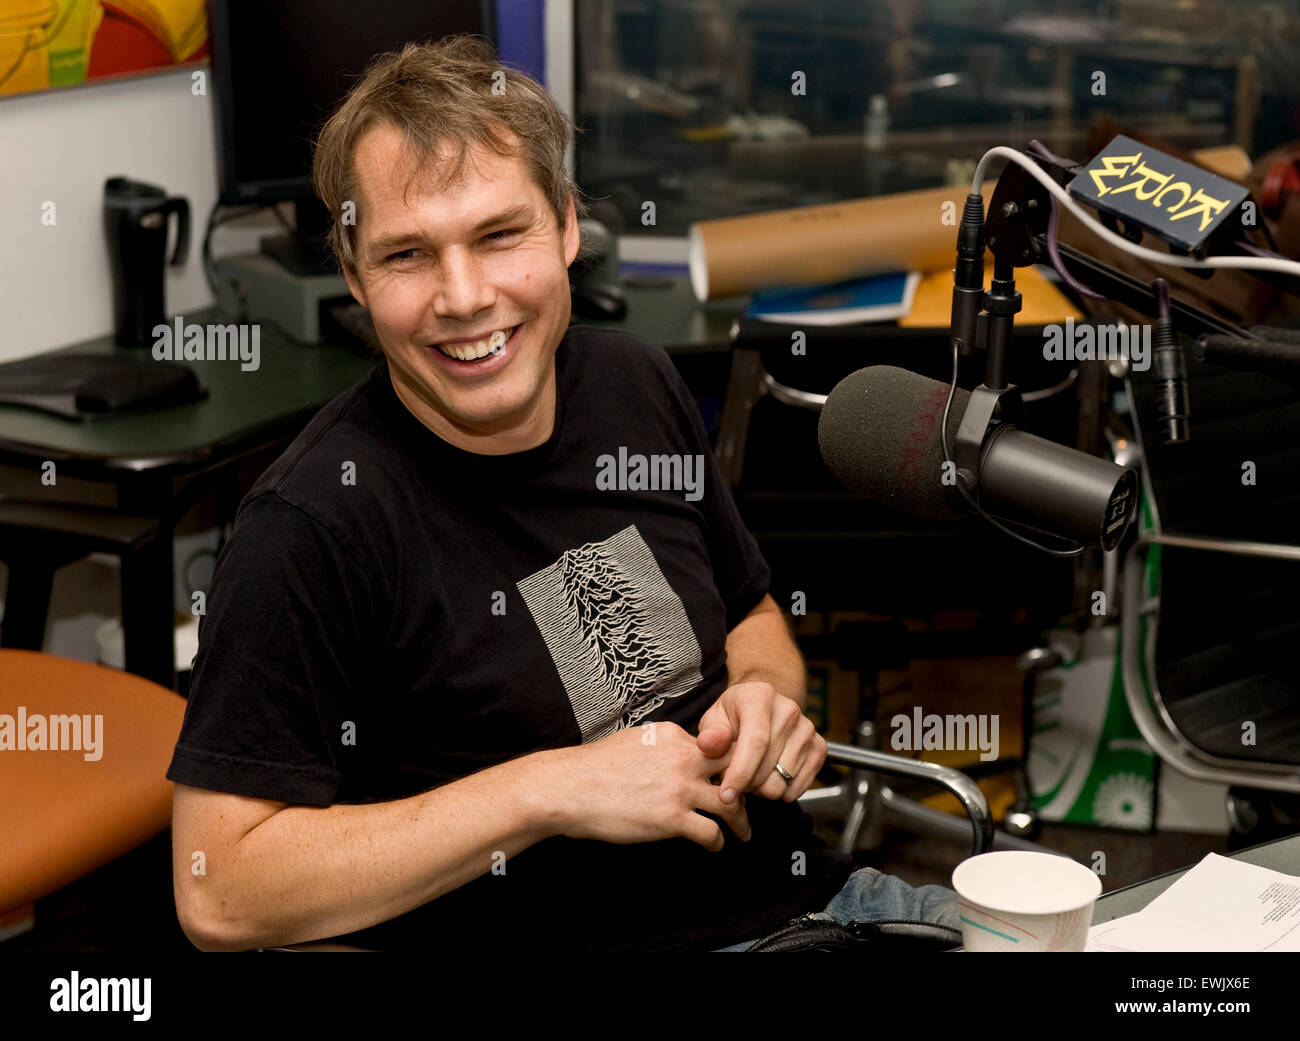 June 27, 2015 - Street artist SHEPARD FAIREY is wanted by police in Detroit after they say he tagged buildings across Stock Photo